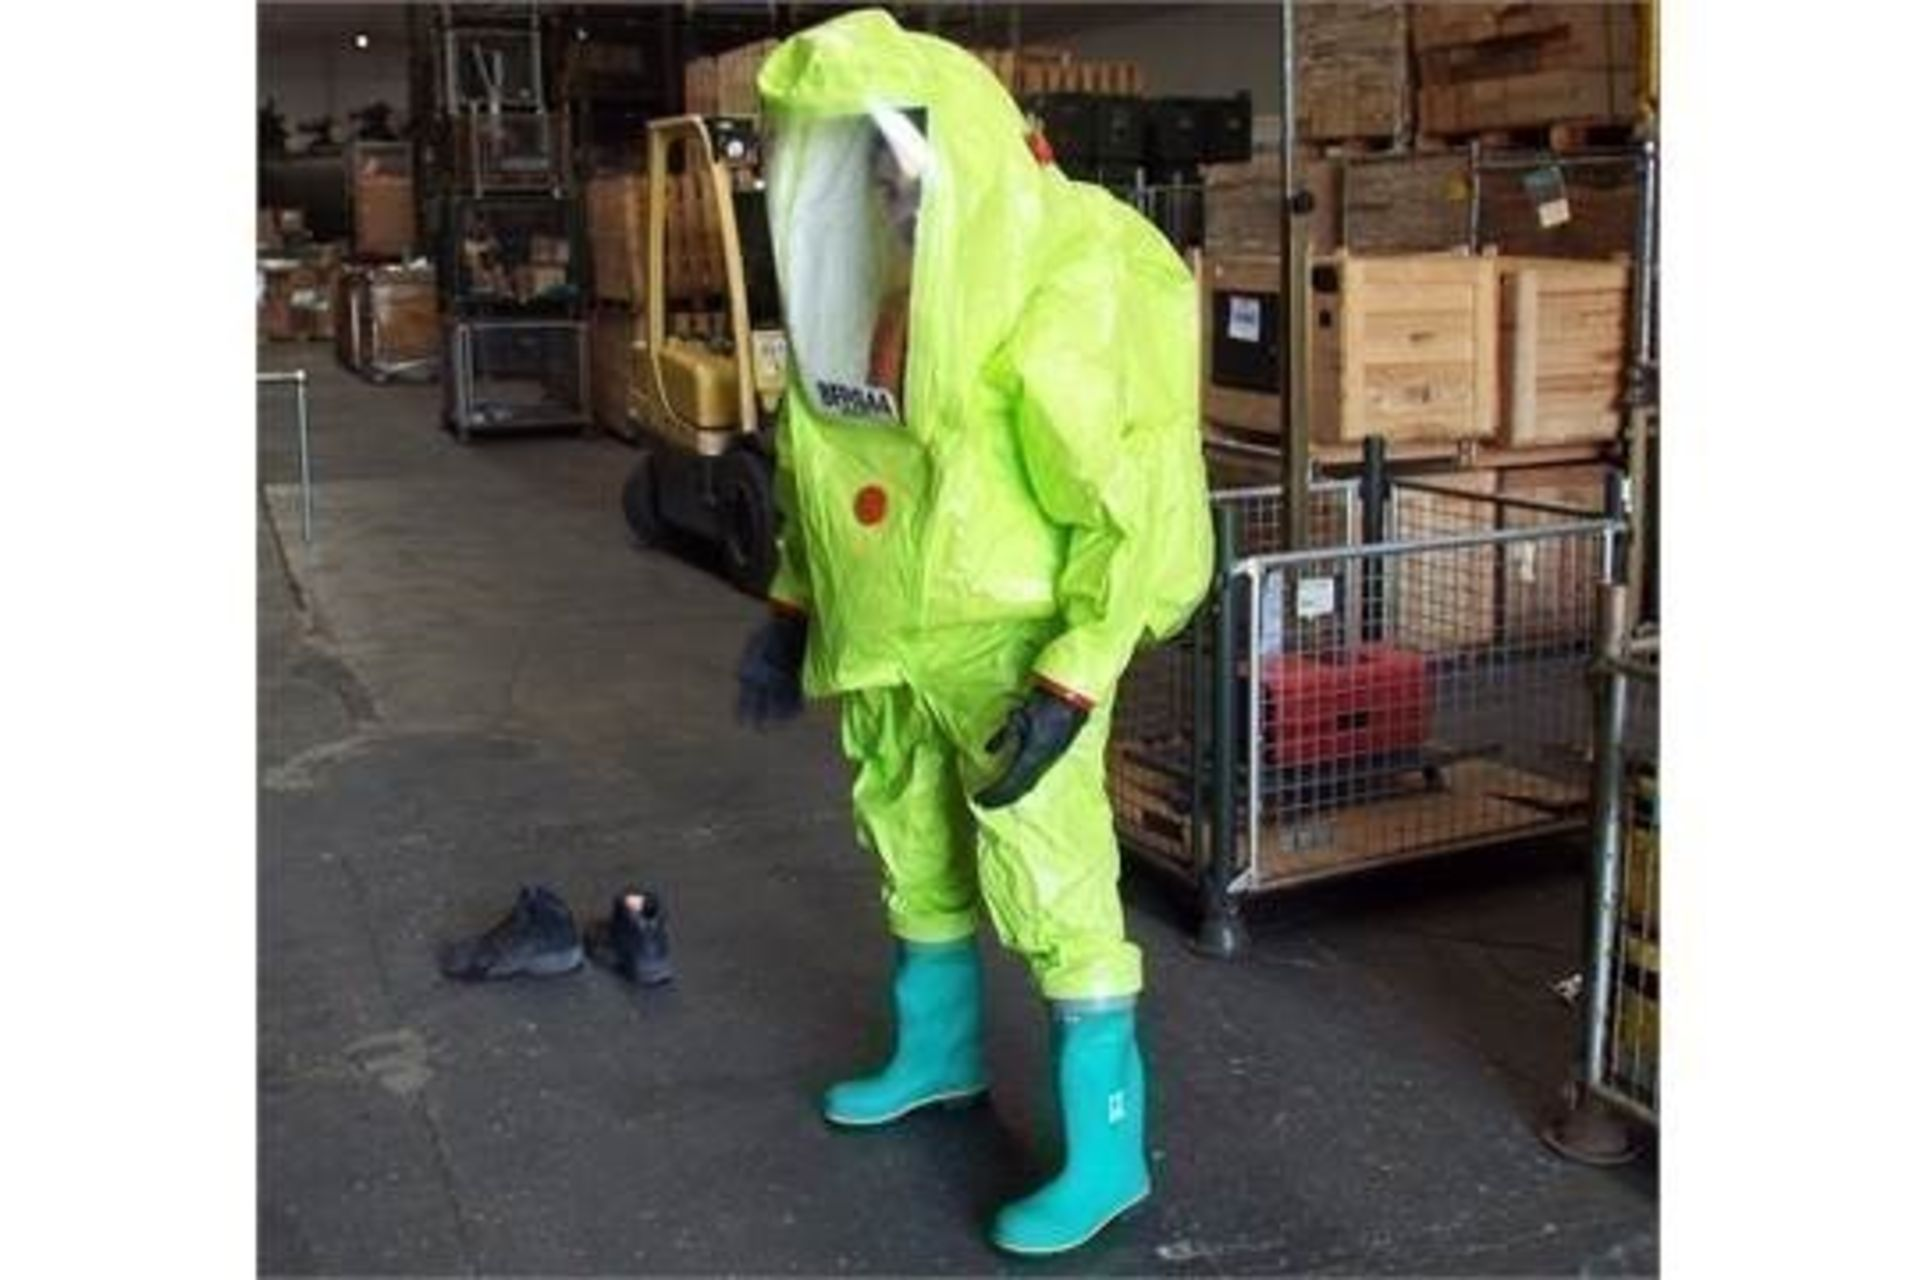 Lot 349 - 1 x Unissued Respirex Tychem TK Gas-Tight Hazmat Suit Type 1A with Attached Boots and Gloves. Medium